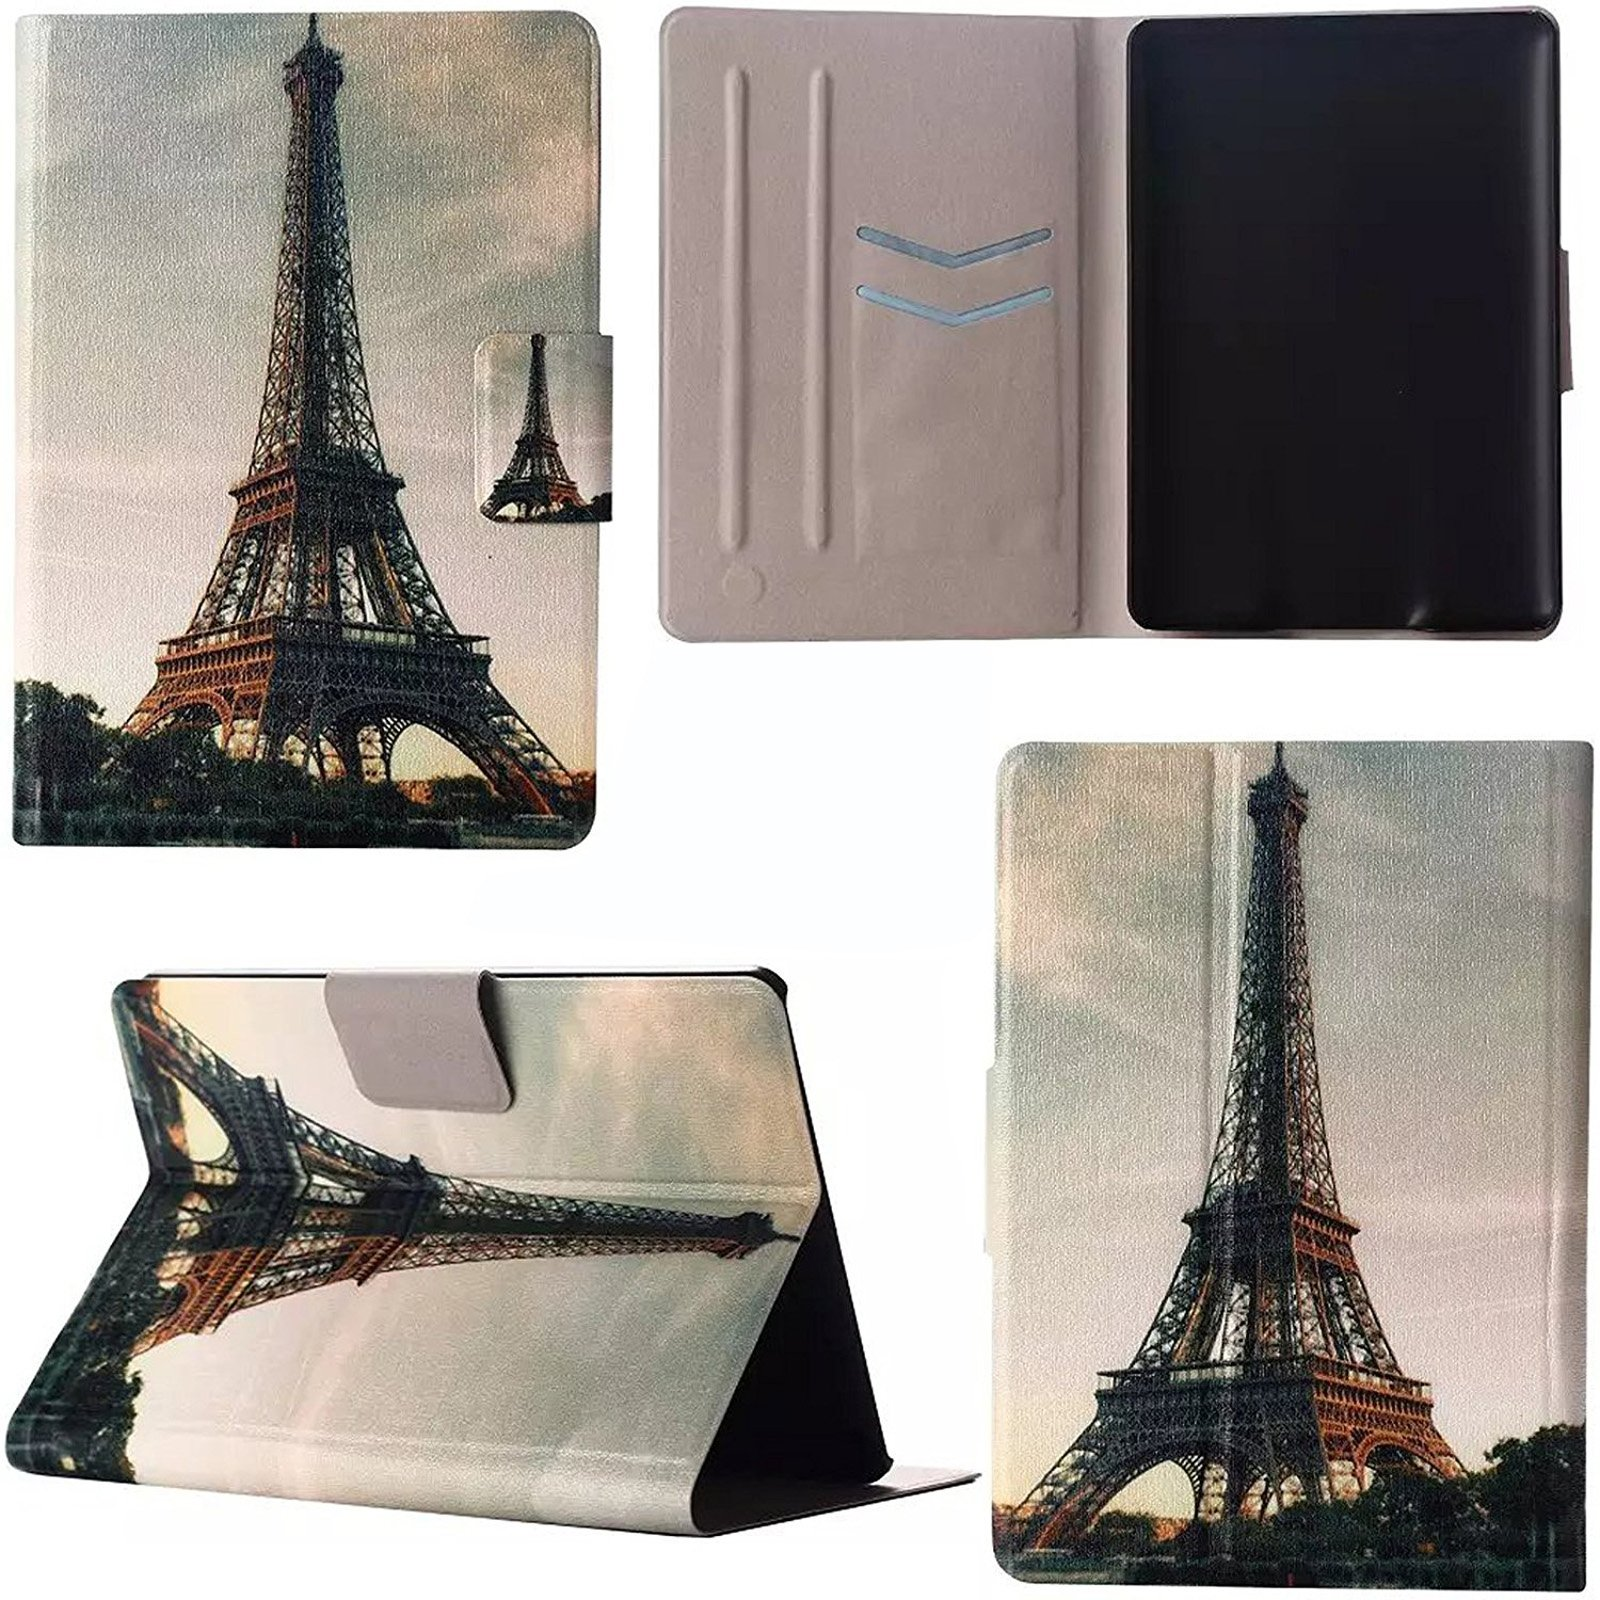 Artyond Kindle Paperwhite Case, The Thinnest PU Leather Case with Auto Wake/Sleep Feature Smart Cover for Amazon Kindle Paperwhite (Fits All 2012, 2013, 2015 and 2016 Versions) (Eiffel Tower)